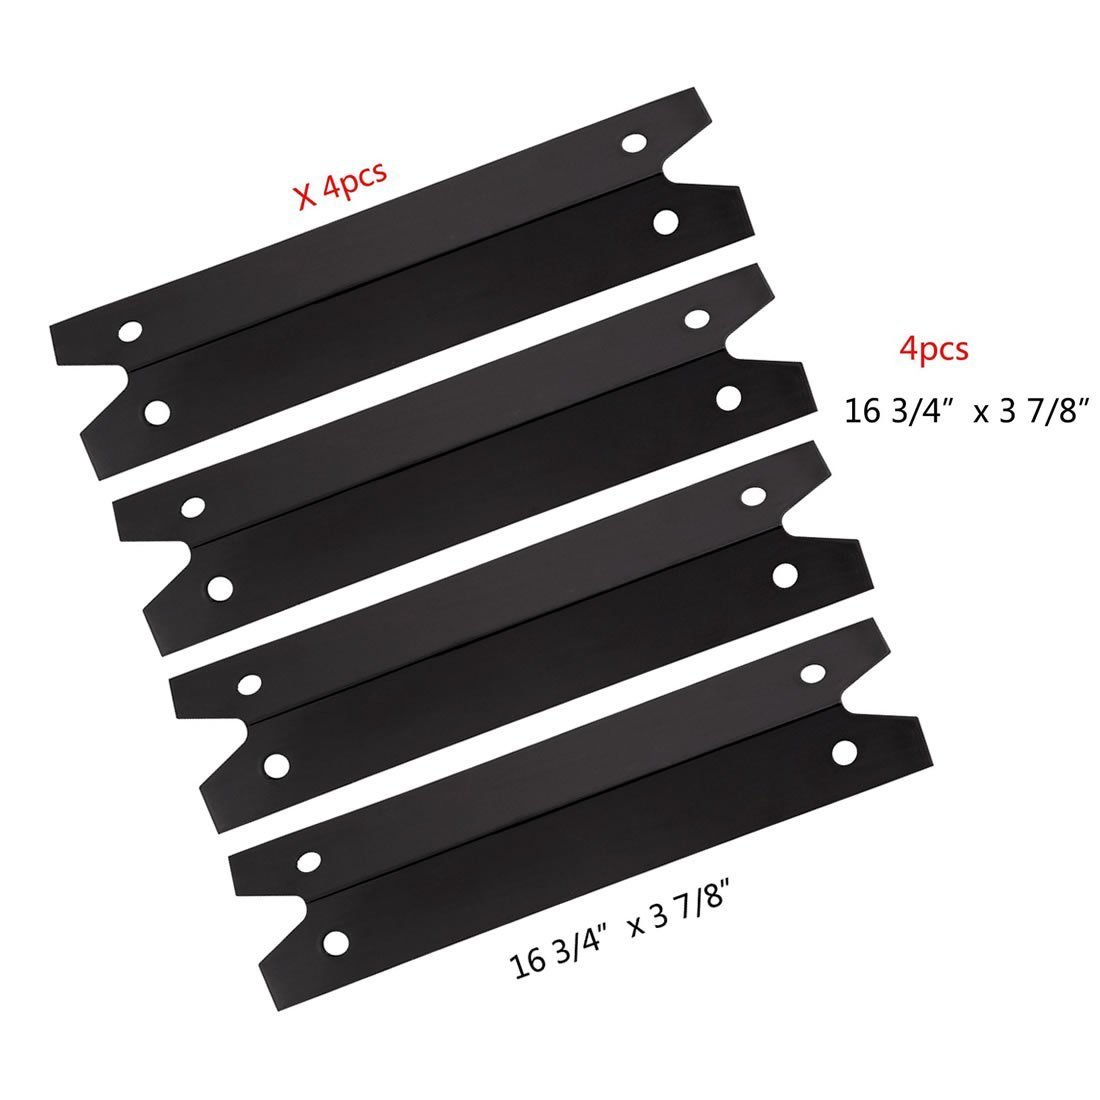 bbq-parts PPG311 (4-pack) BBQ Gas Grill Heat Plate ...